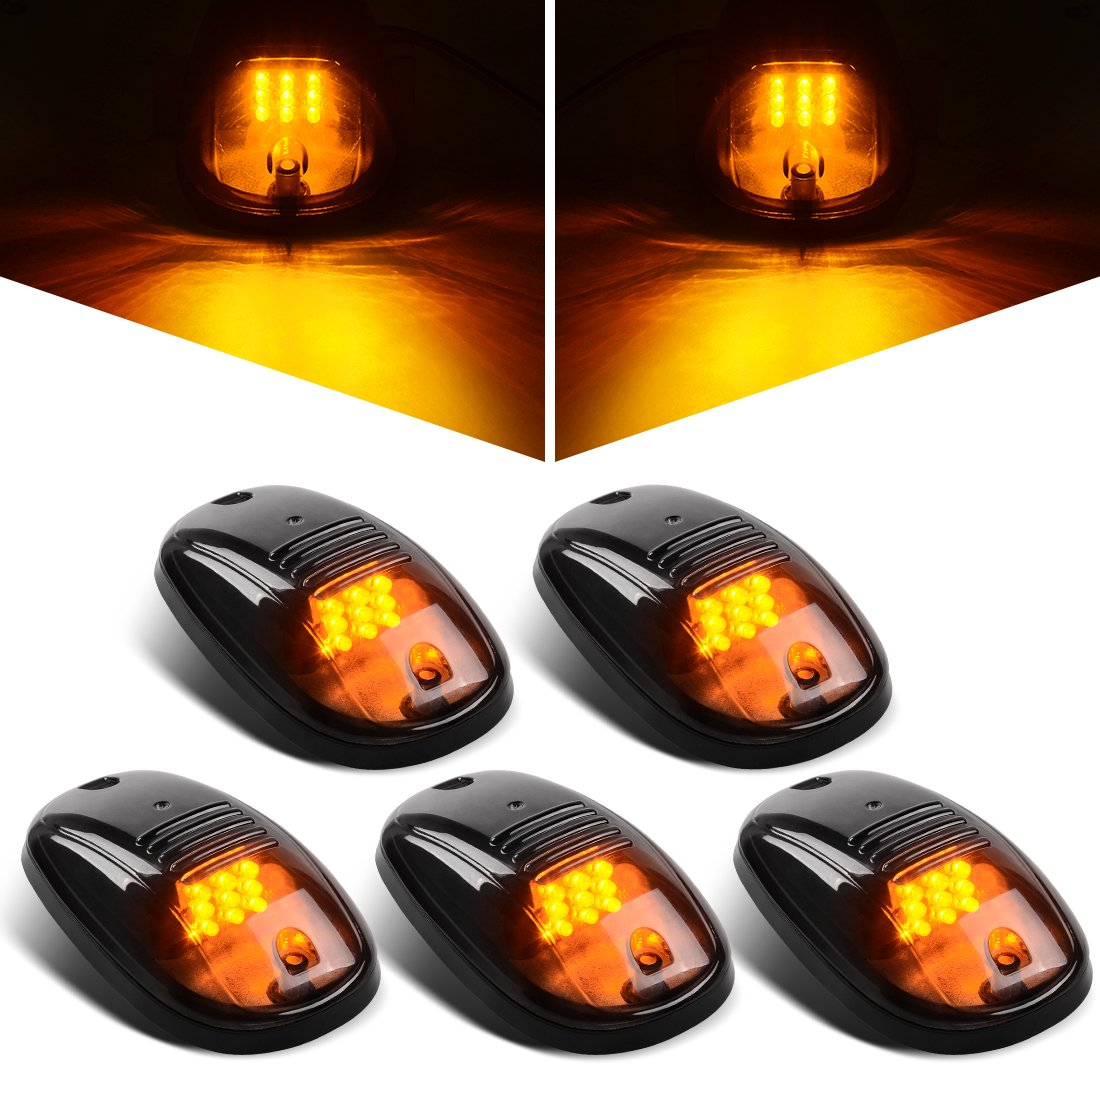 Clear 5Pcs LED Cab Roof Running Marker Lights with Gasket for 2003-2018 Dodge Ram 1500 2500 3500 4500 5500 Pickup Truck DWVO